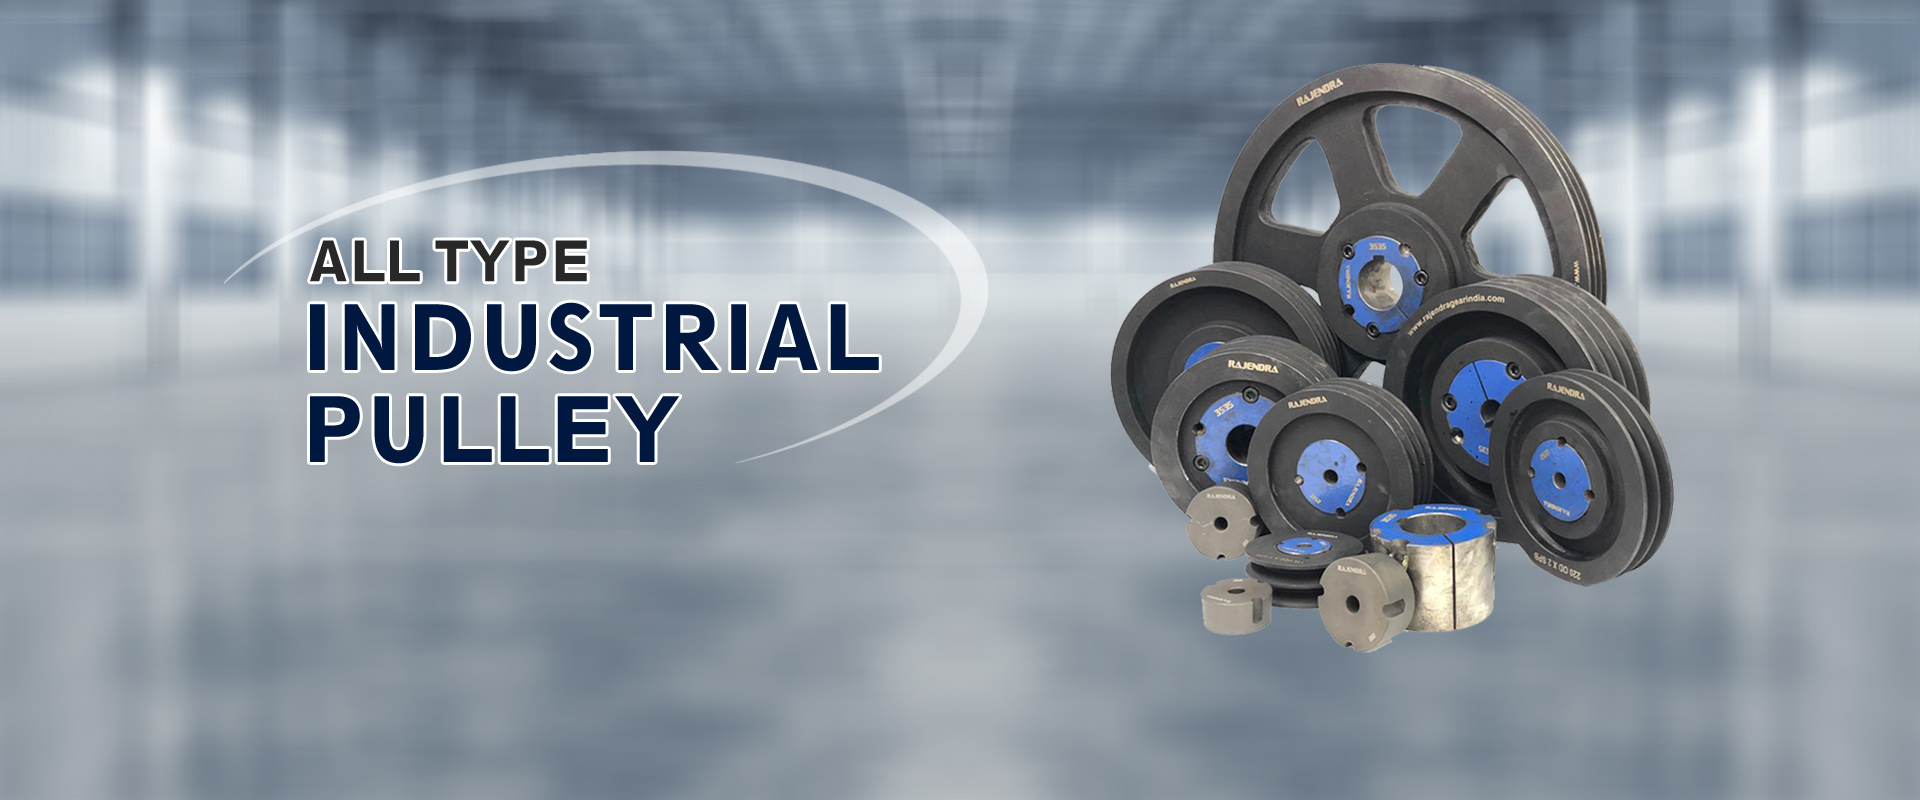 All Type Industrial Pulley Manufacturer, Supplier and Exporter in Ahmedabad, Gujarat, India